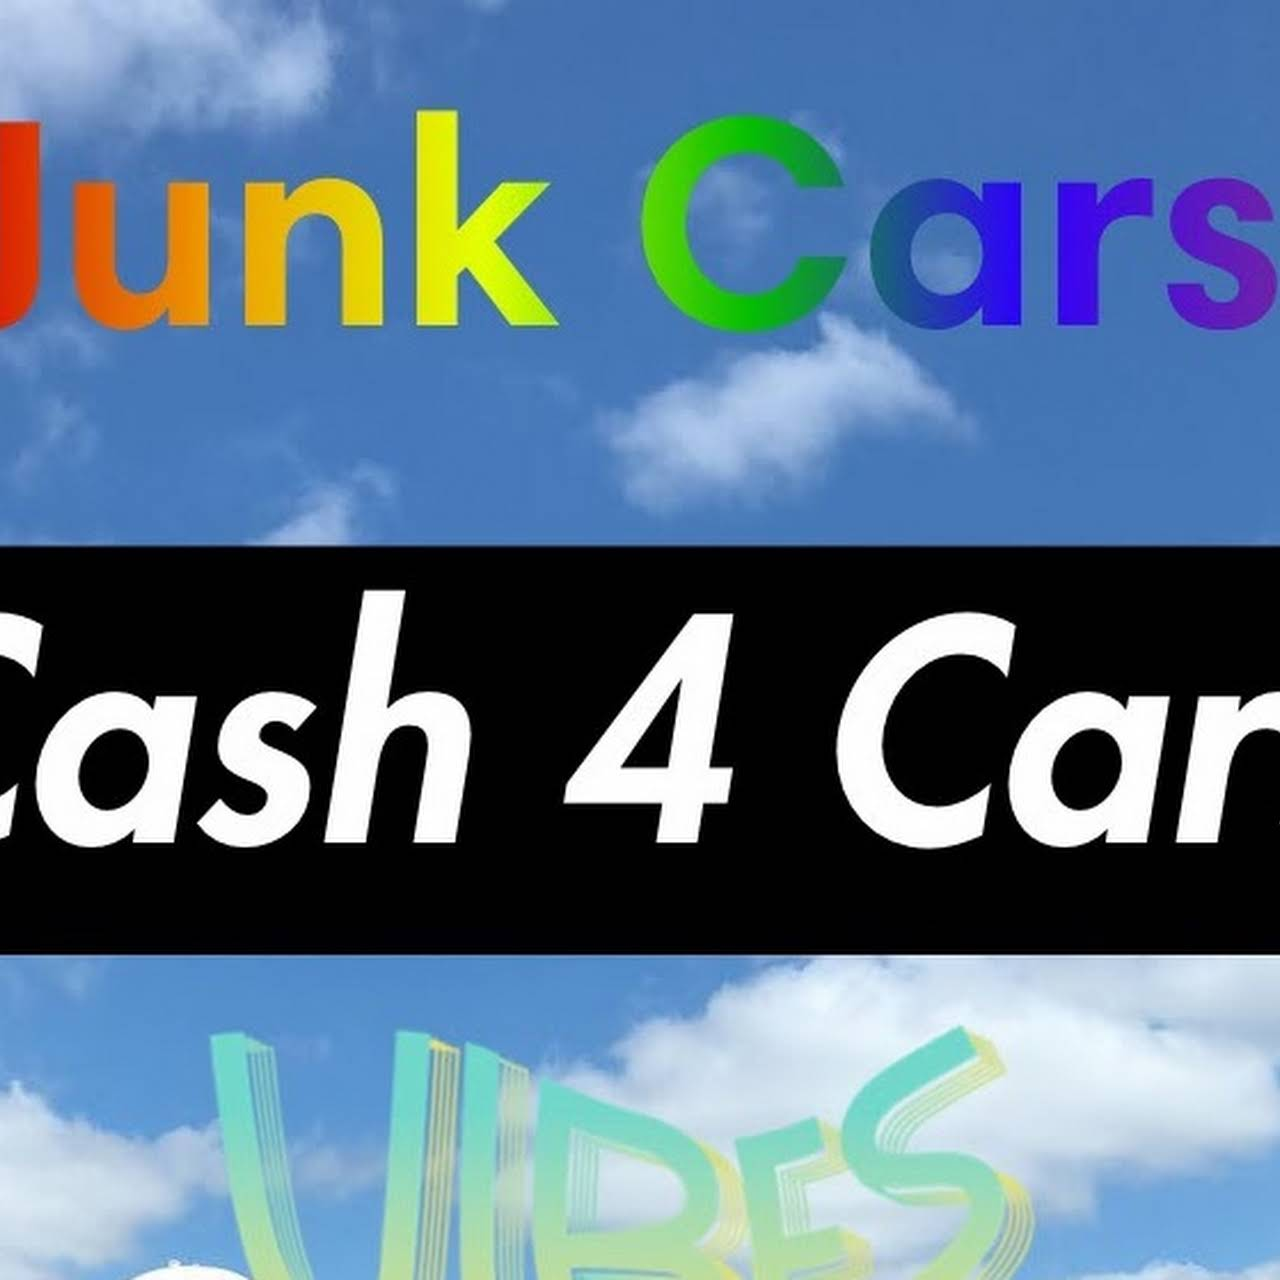 Cash For Cars & Cash For Junk Cars Inc. We Buying Cars Auto Wreckers ...